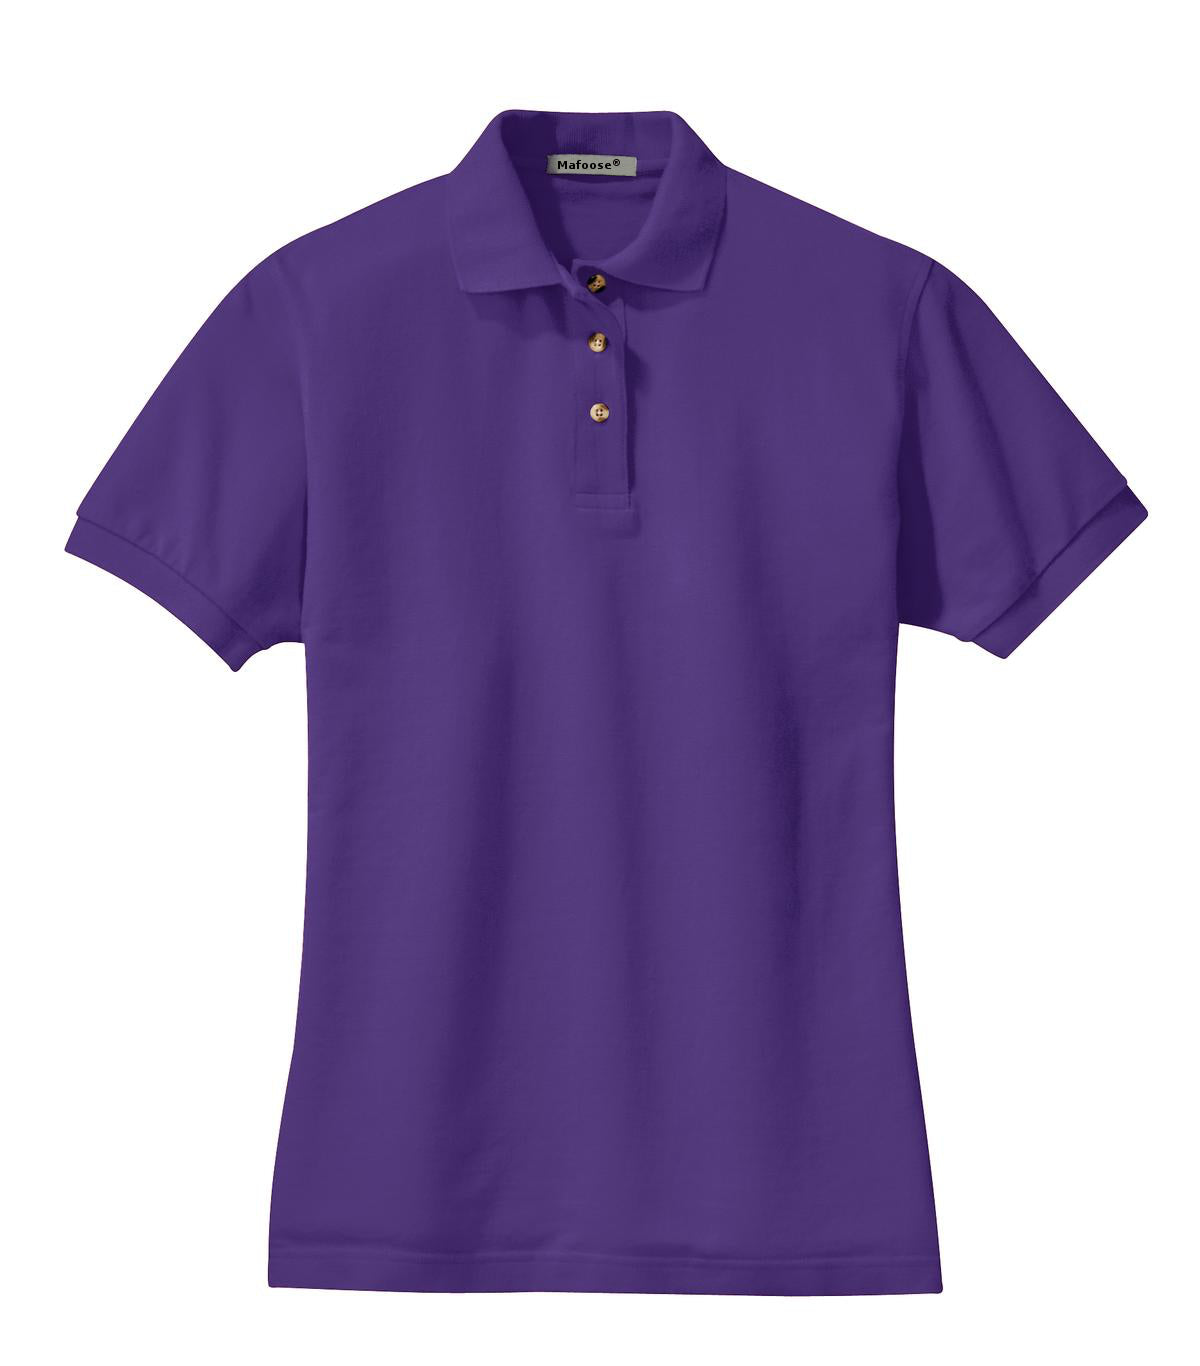 Mafoose Women's Heavyweight Cotton Pique Polo Shirt Purple-Front